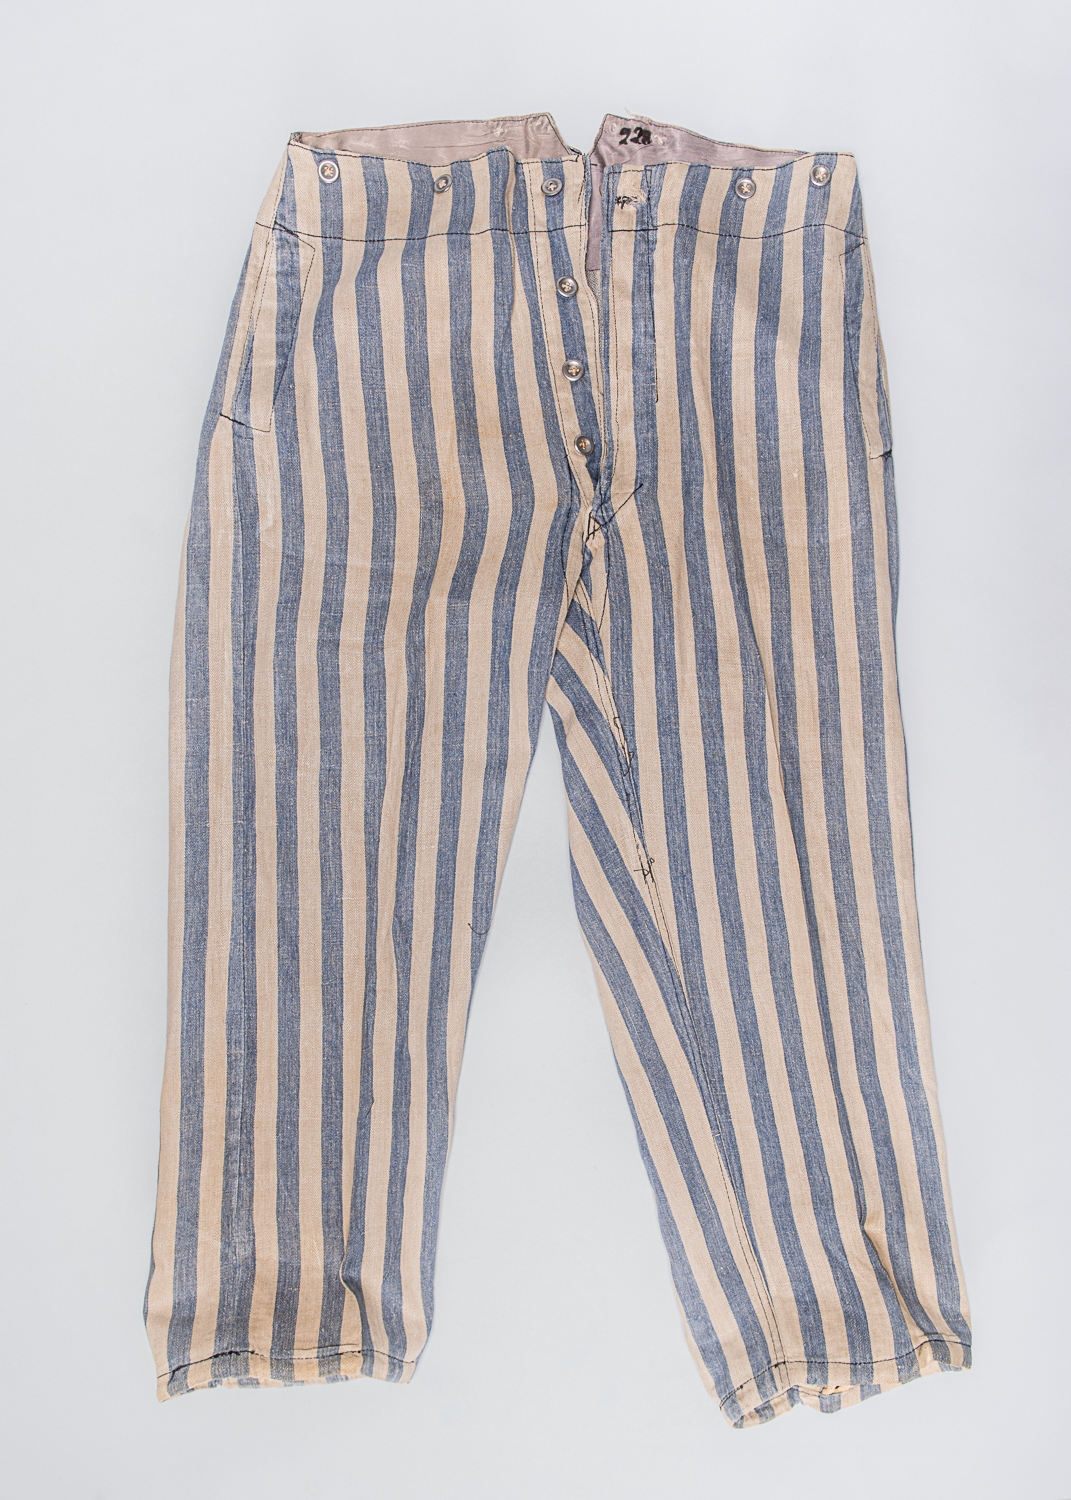 Pants from Louis Miller's uniform when he was a prisoner at the Auschwitz Birkenau concentration camp.